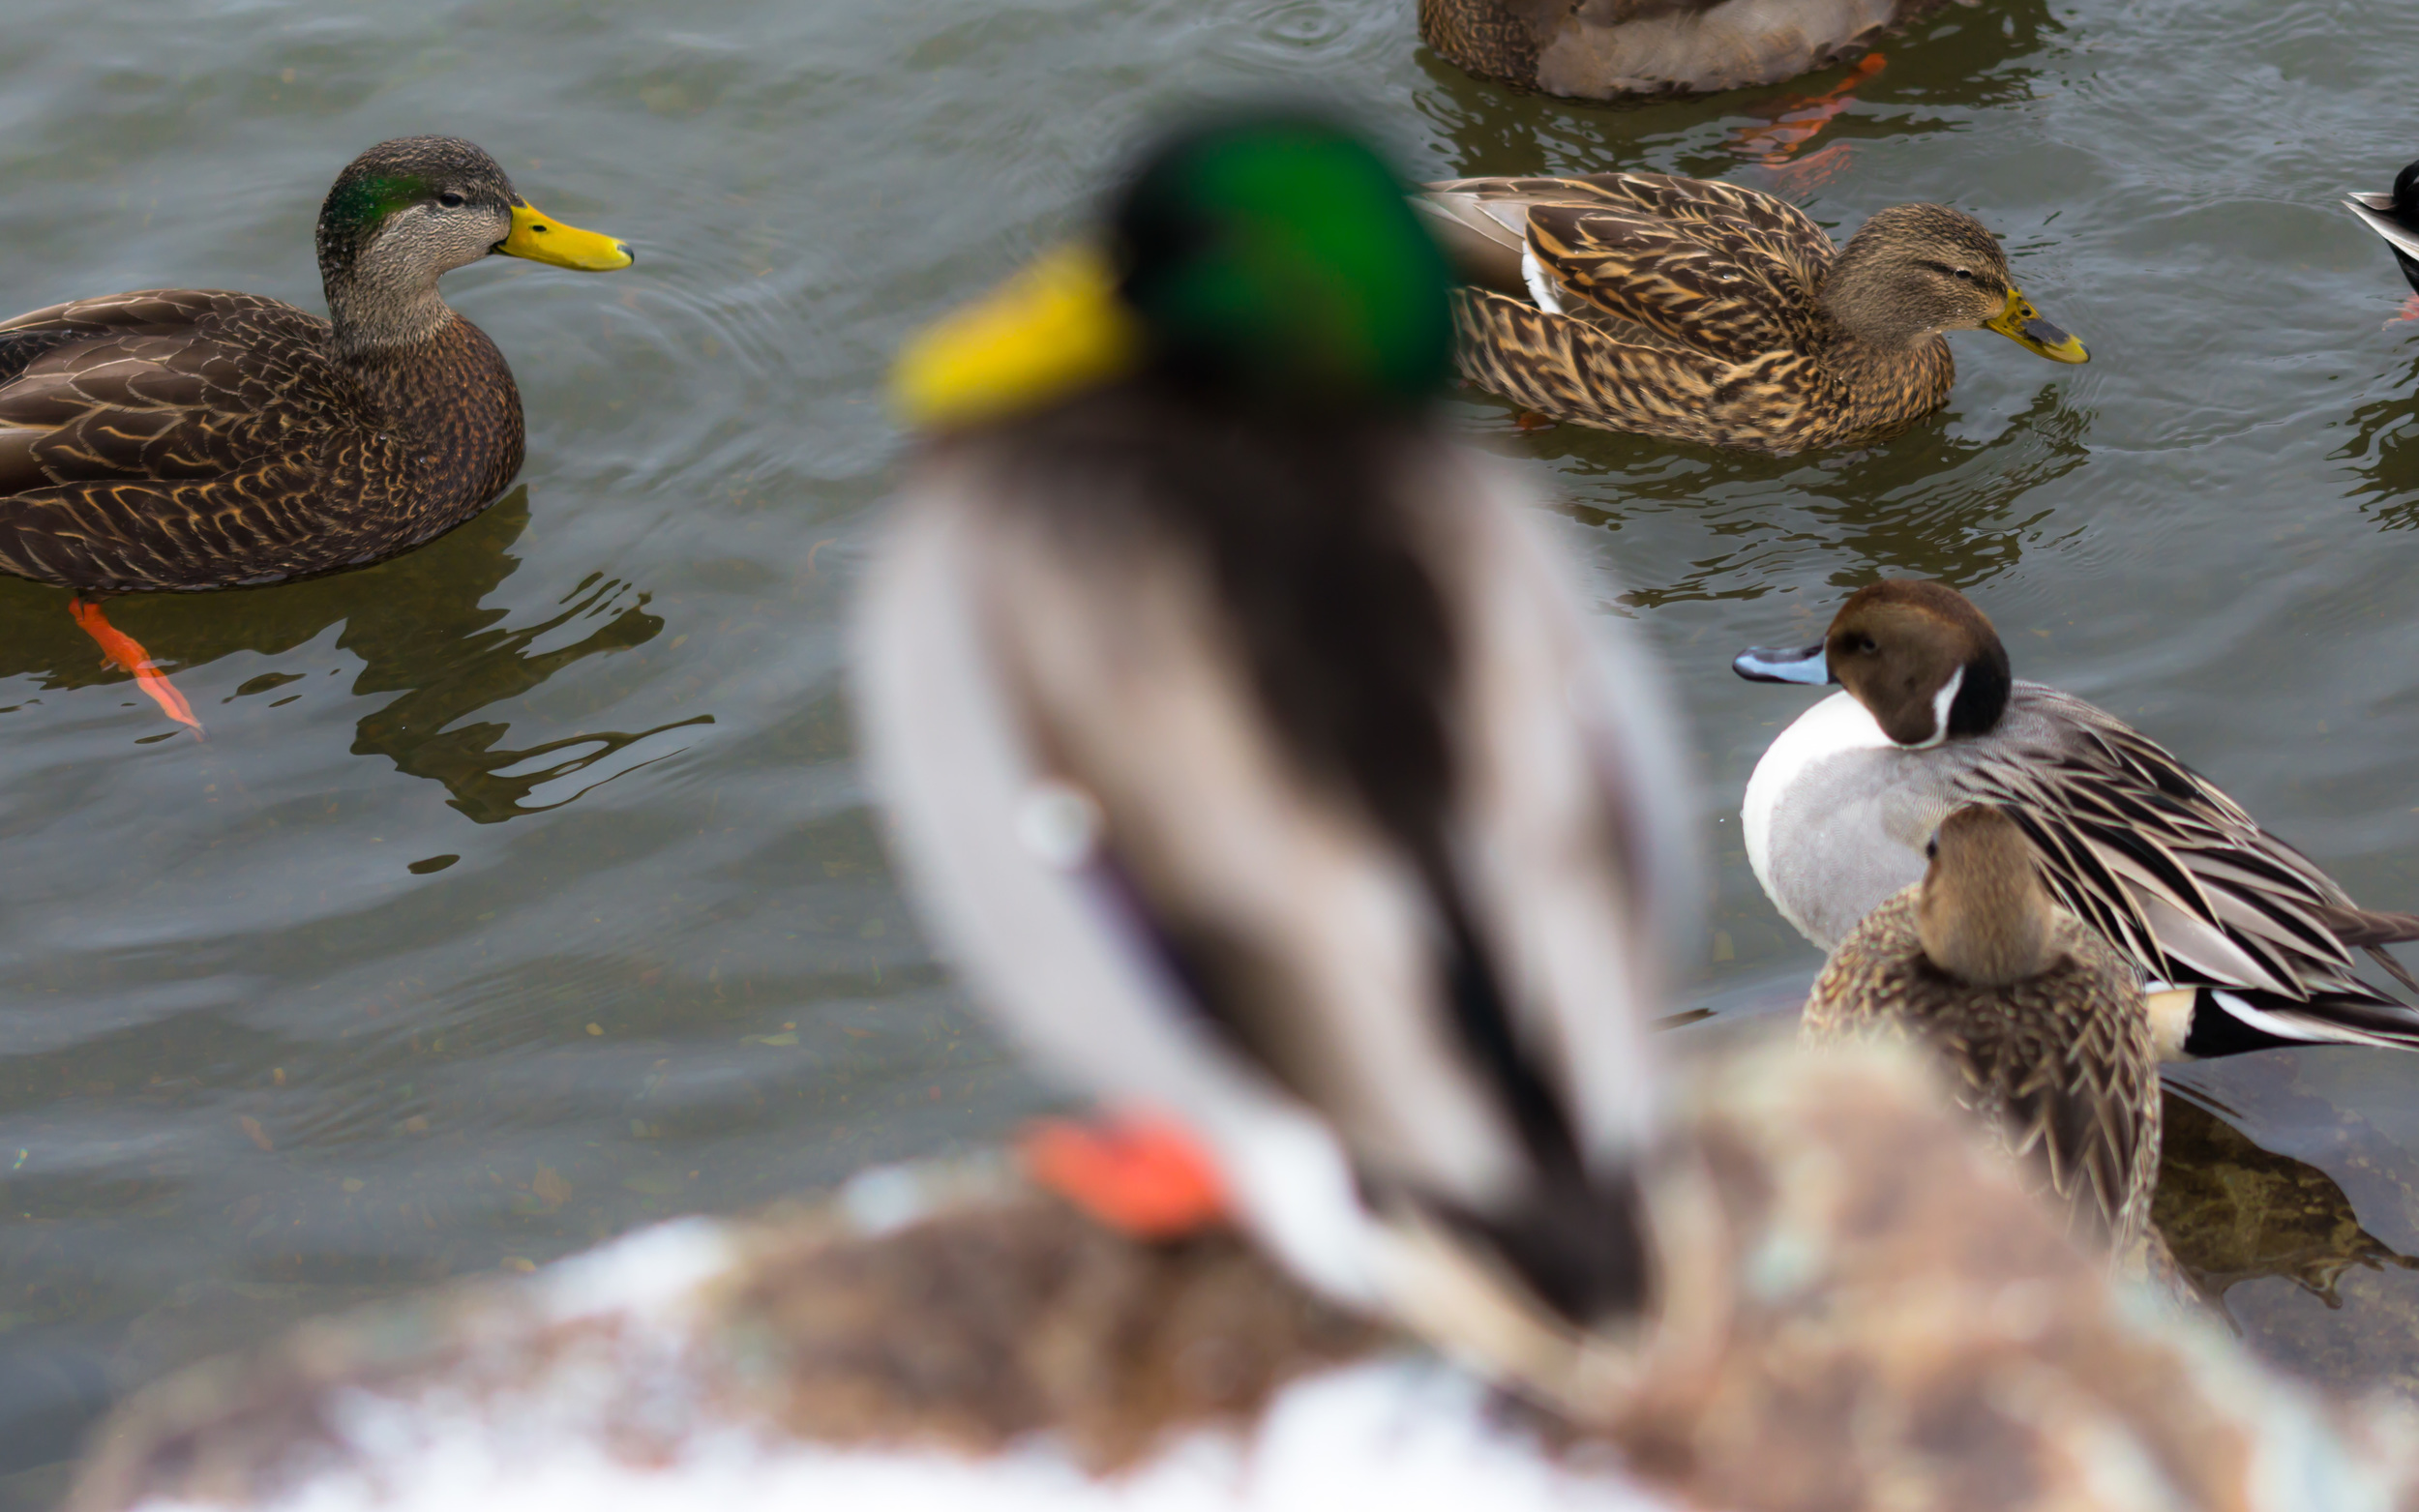 Out of focus duck